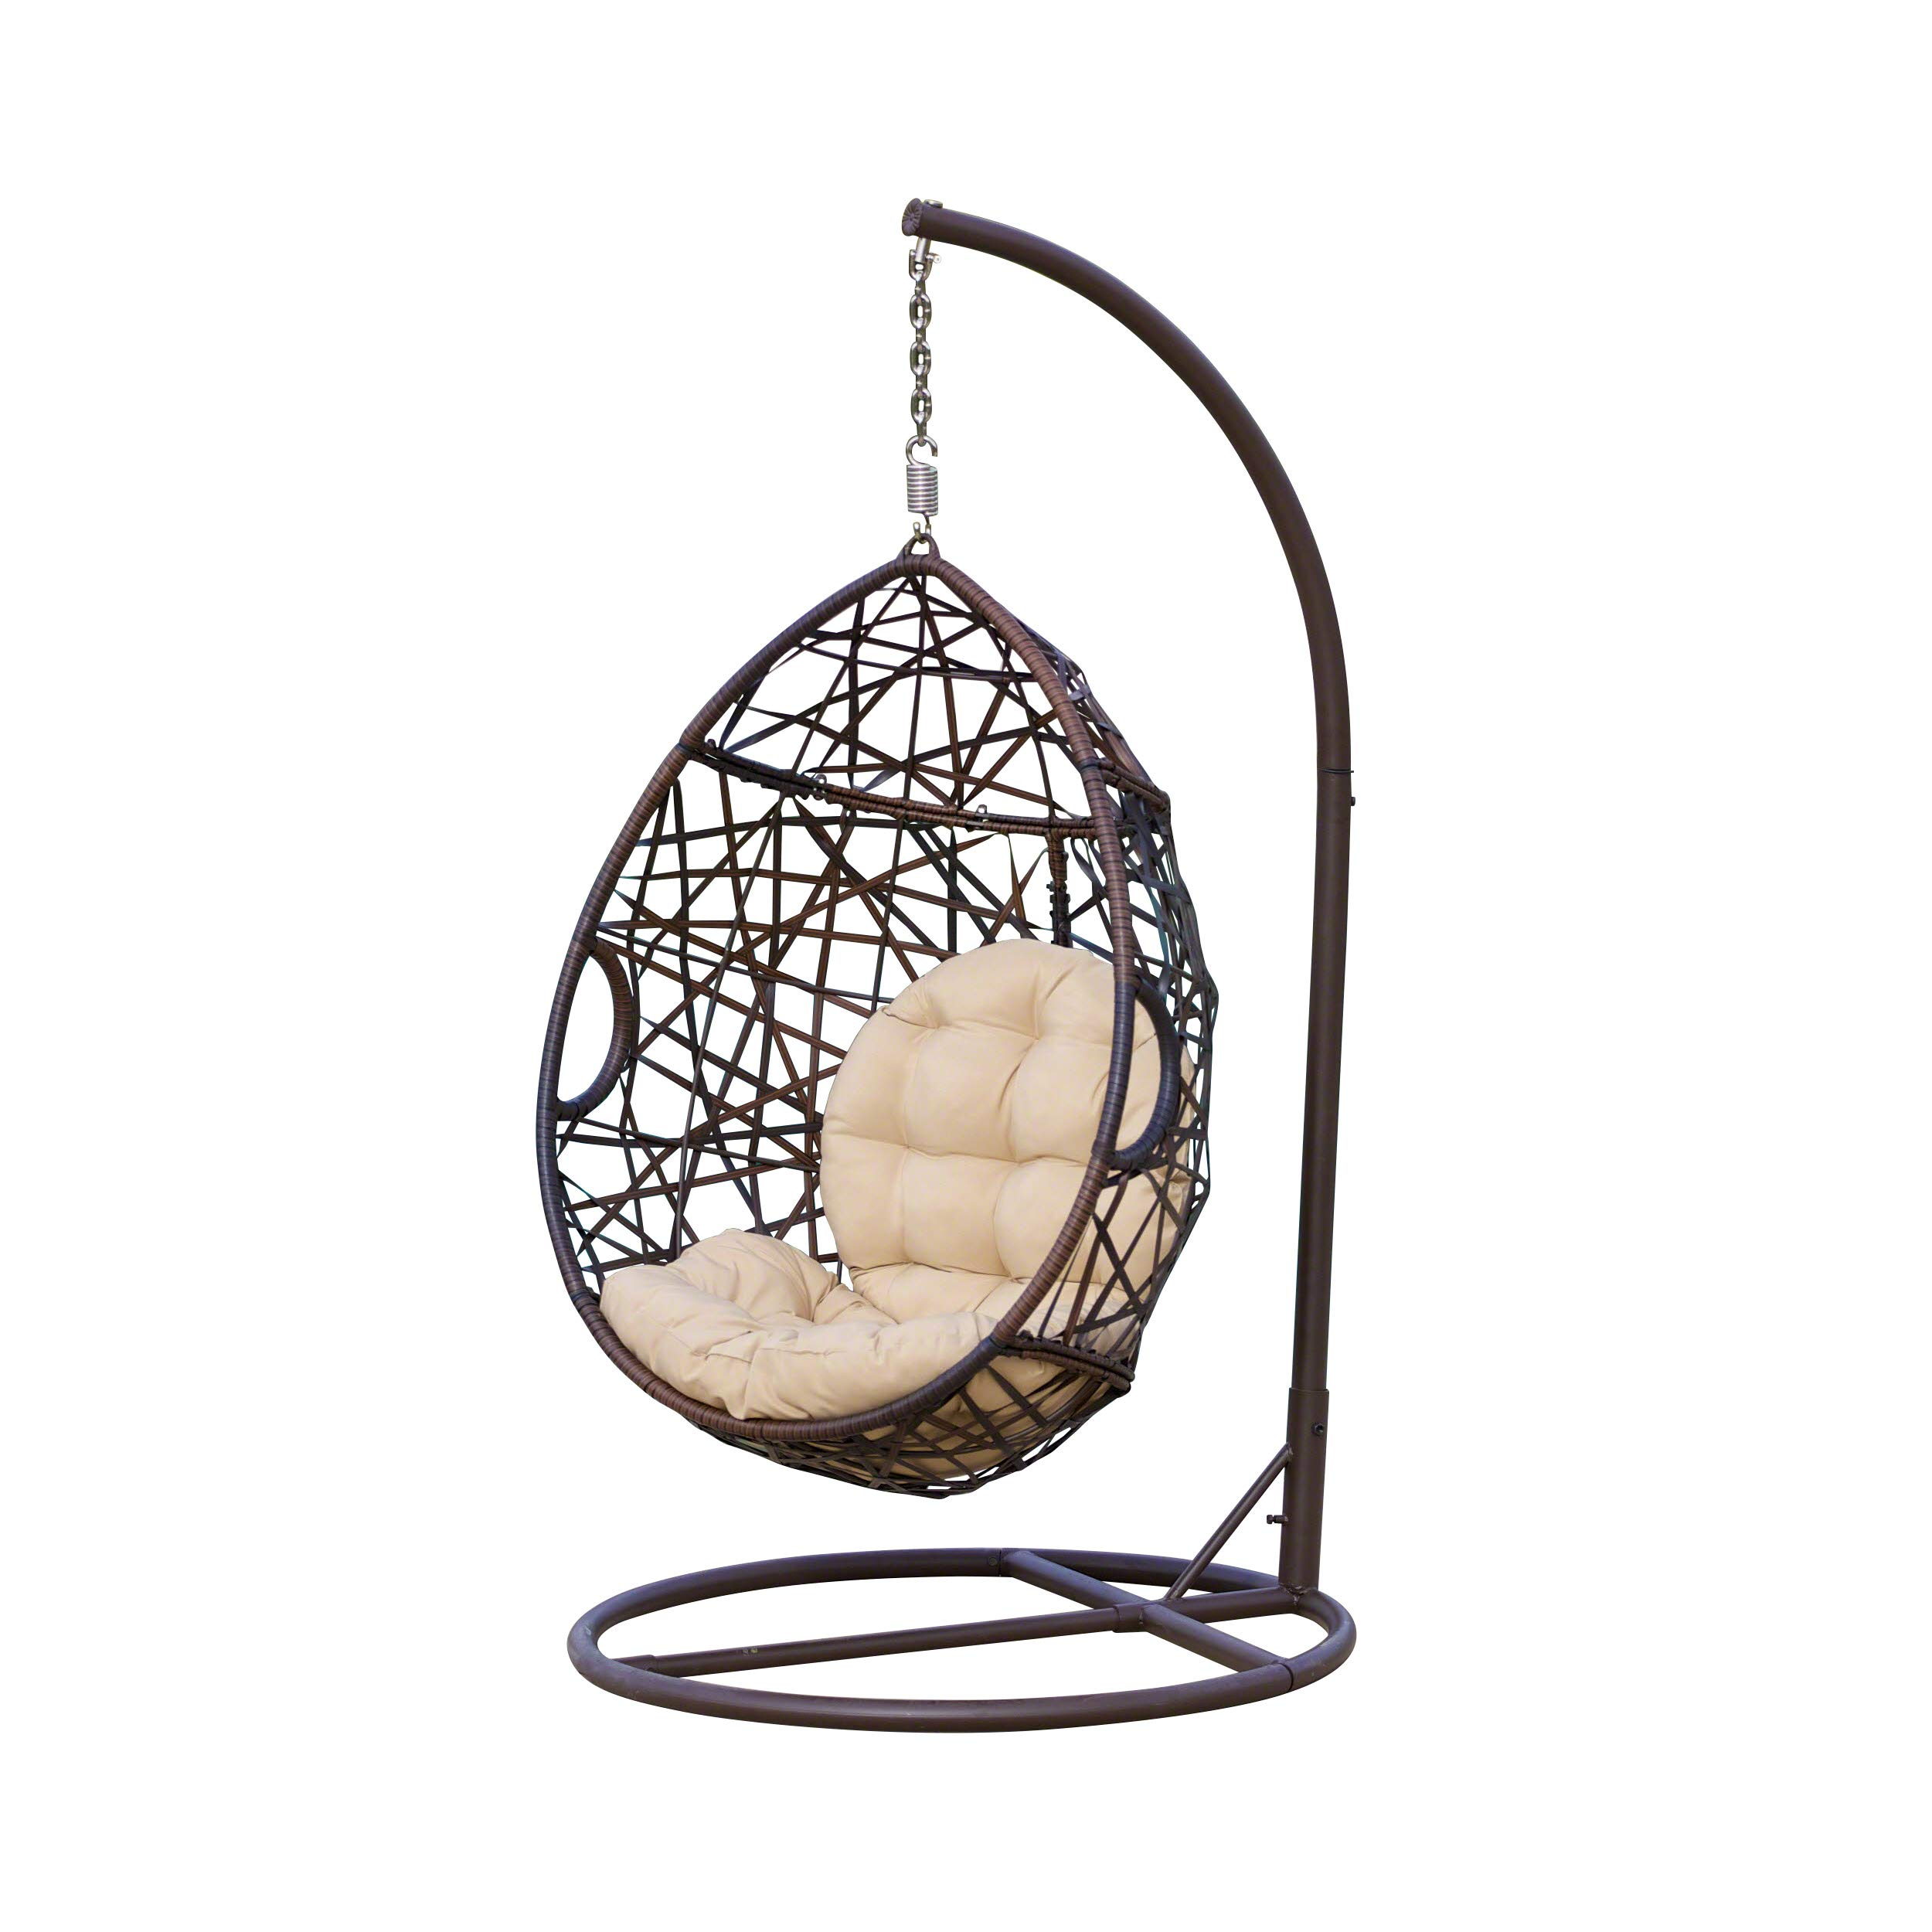 Christopher Knight Home 239197 | Outdoor Wicker Tear Drop Hanging Chair | in Brown by Christopher Knight Home